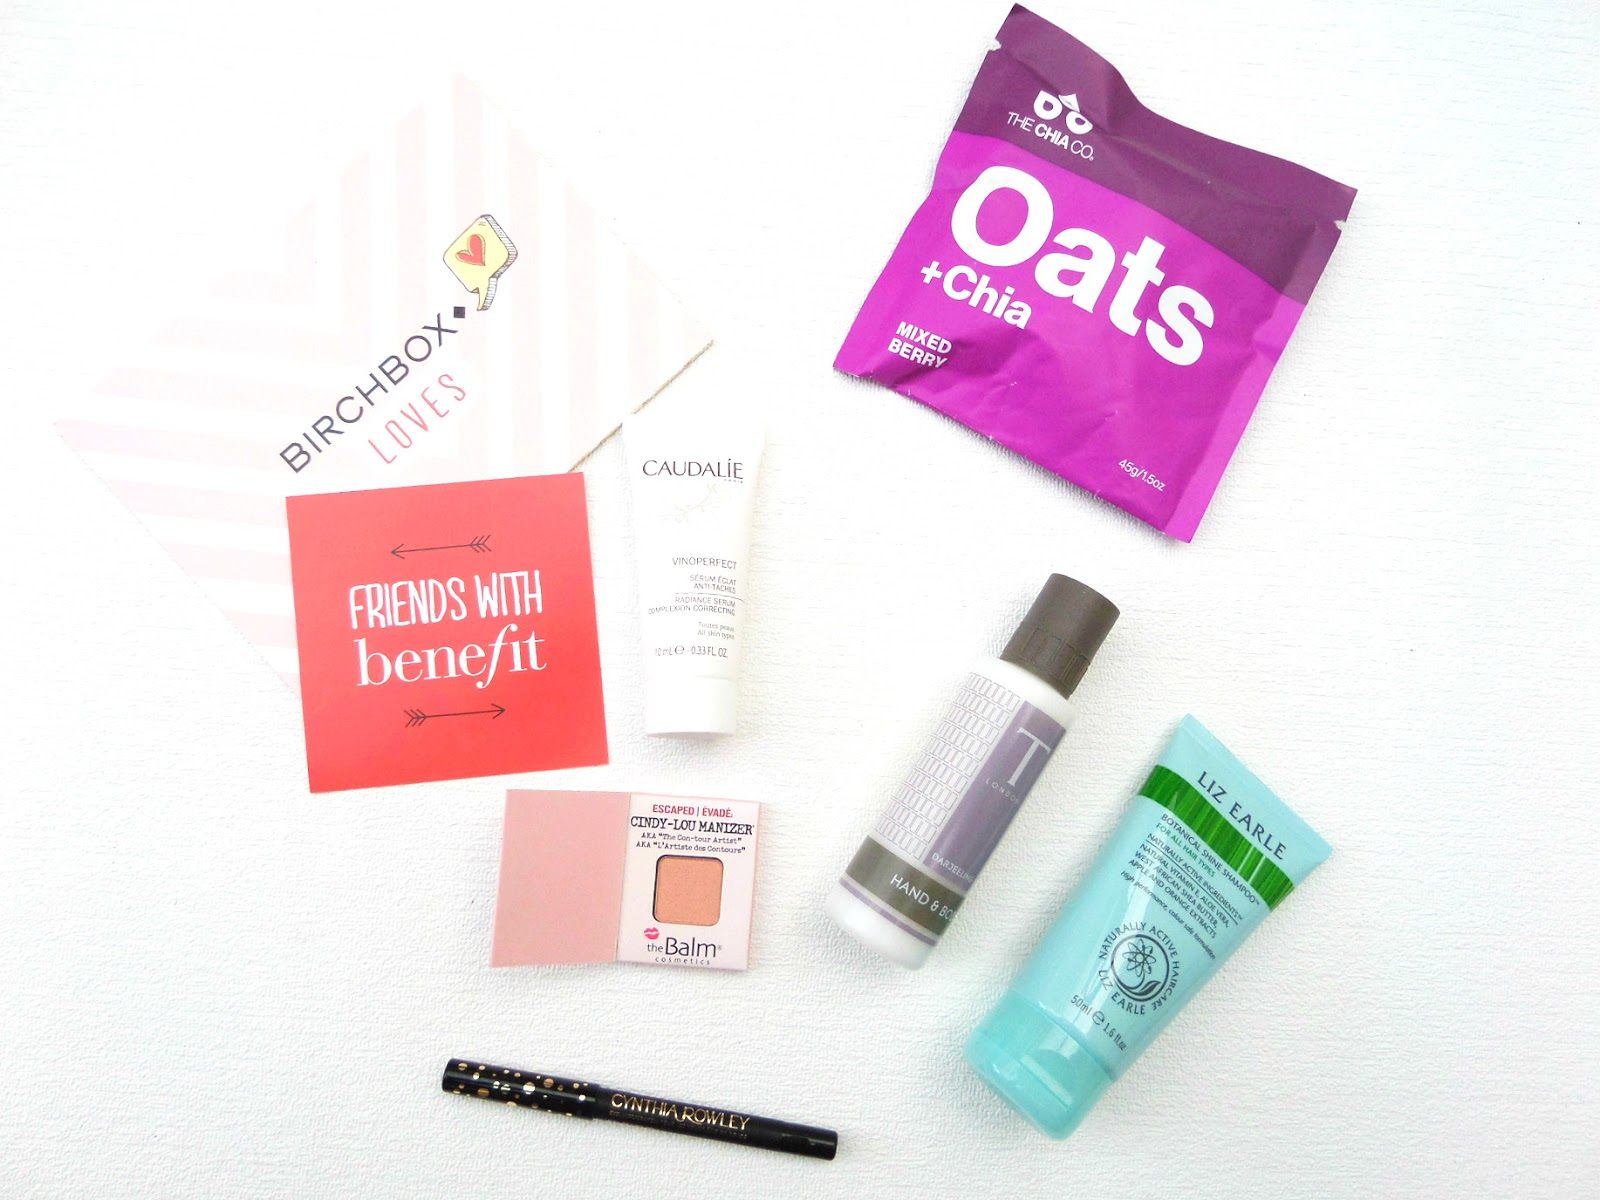 February 2015 Birchbox | Love Is In The Air Review & Inside